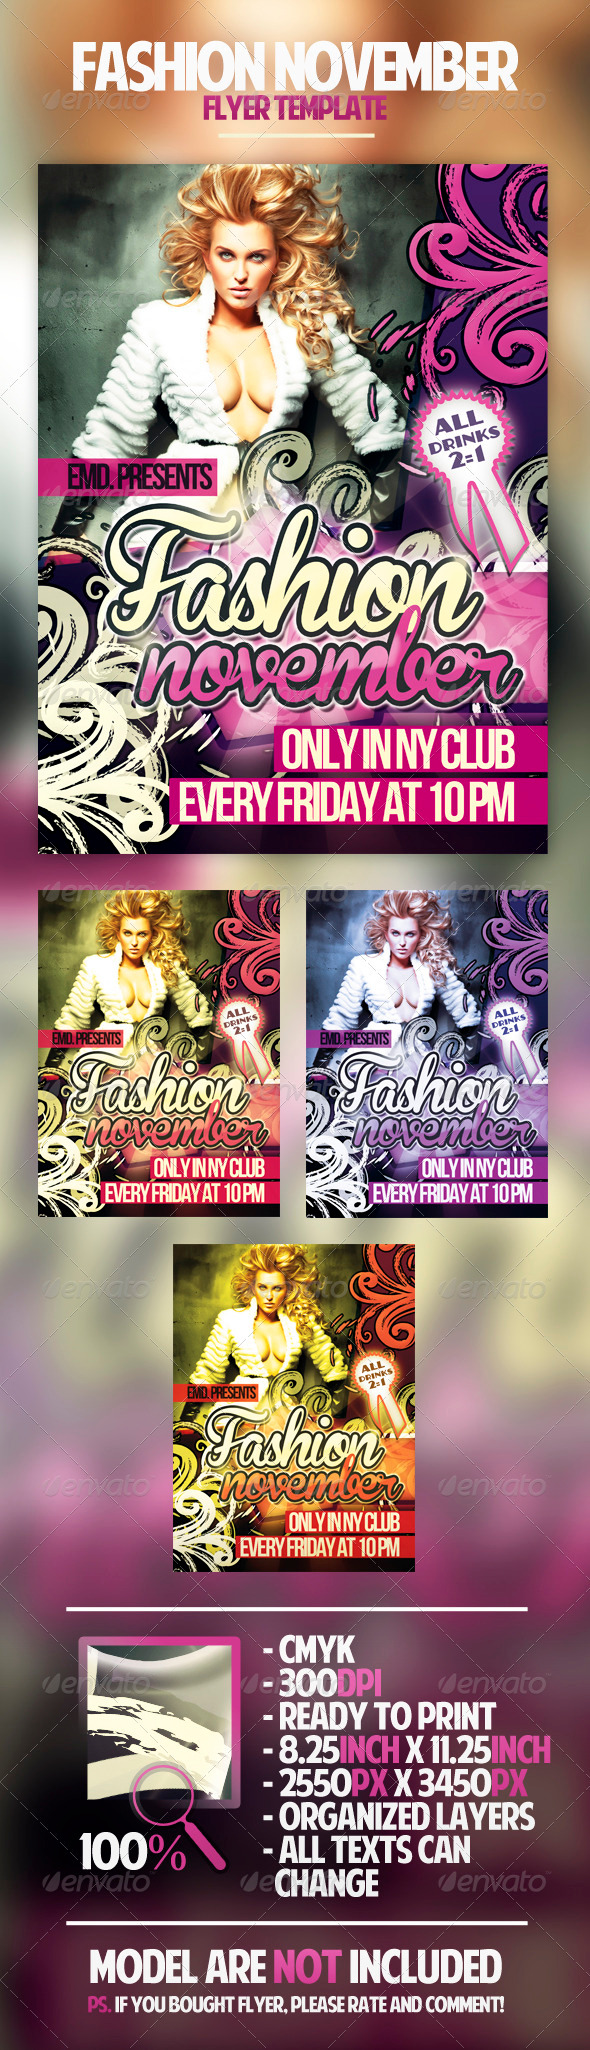 Fashion November Flyer Template - Clubs & Parties Events